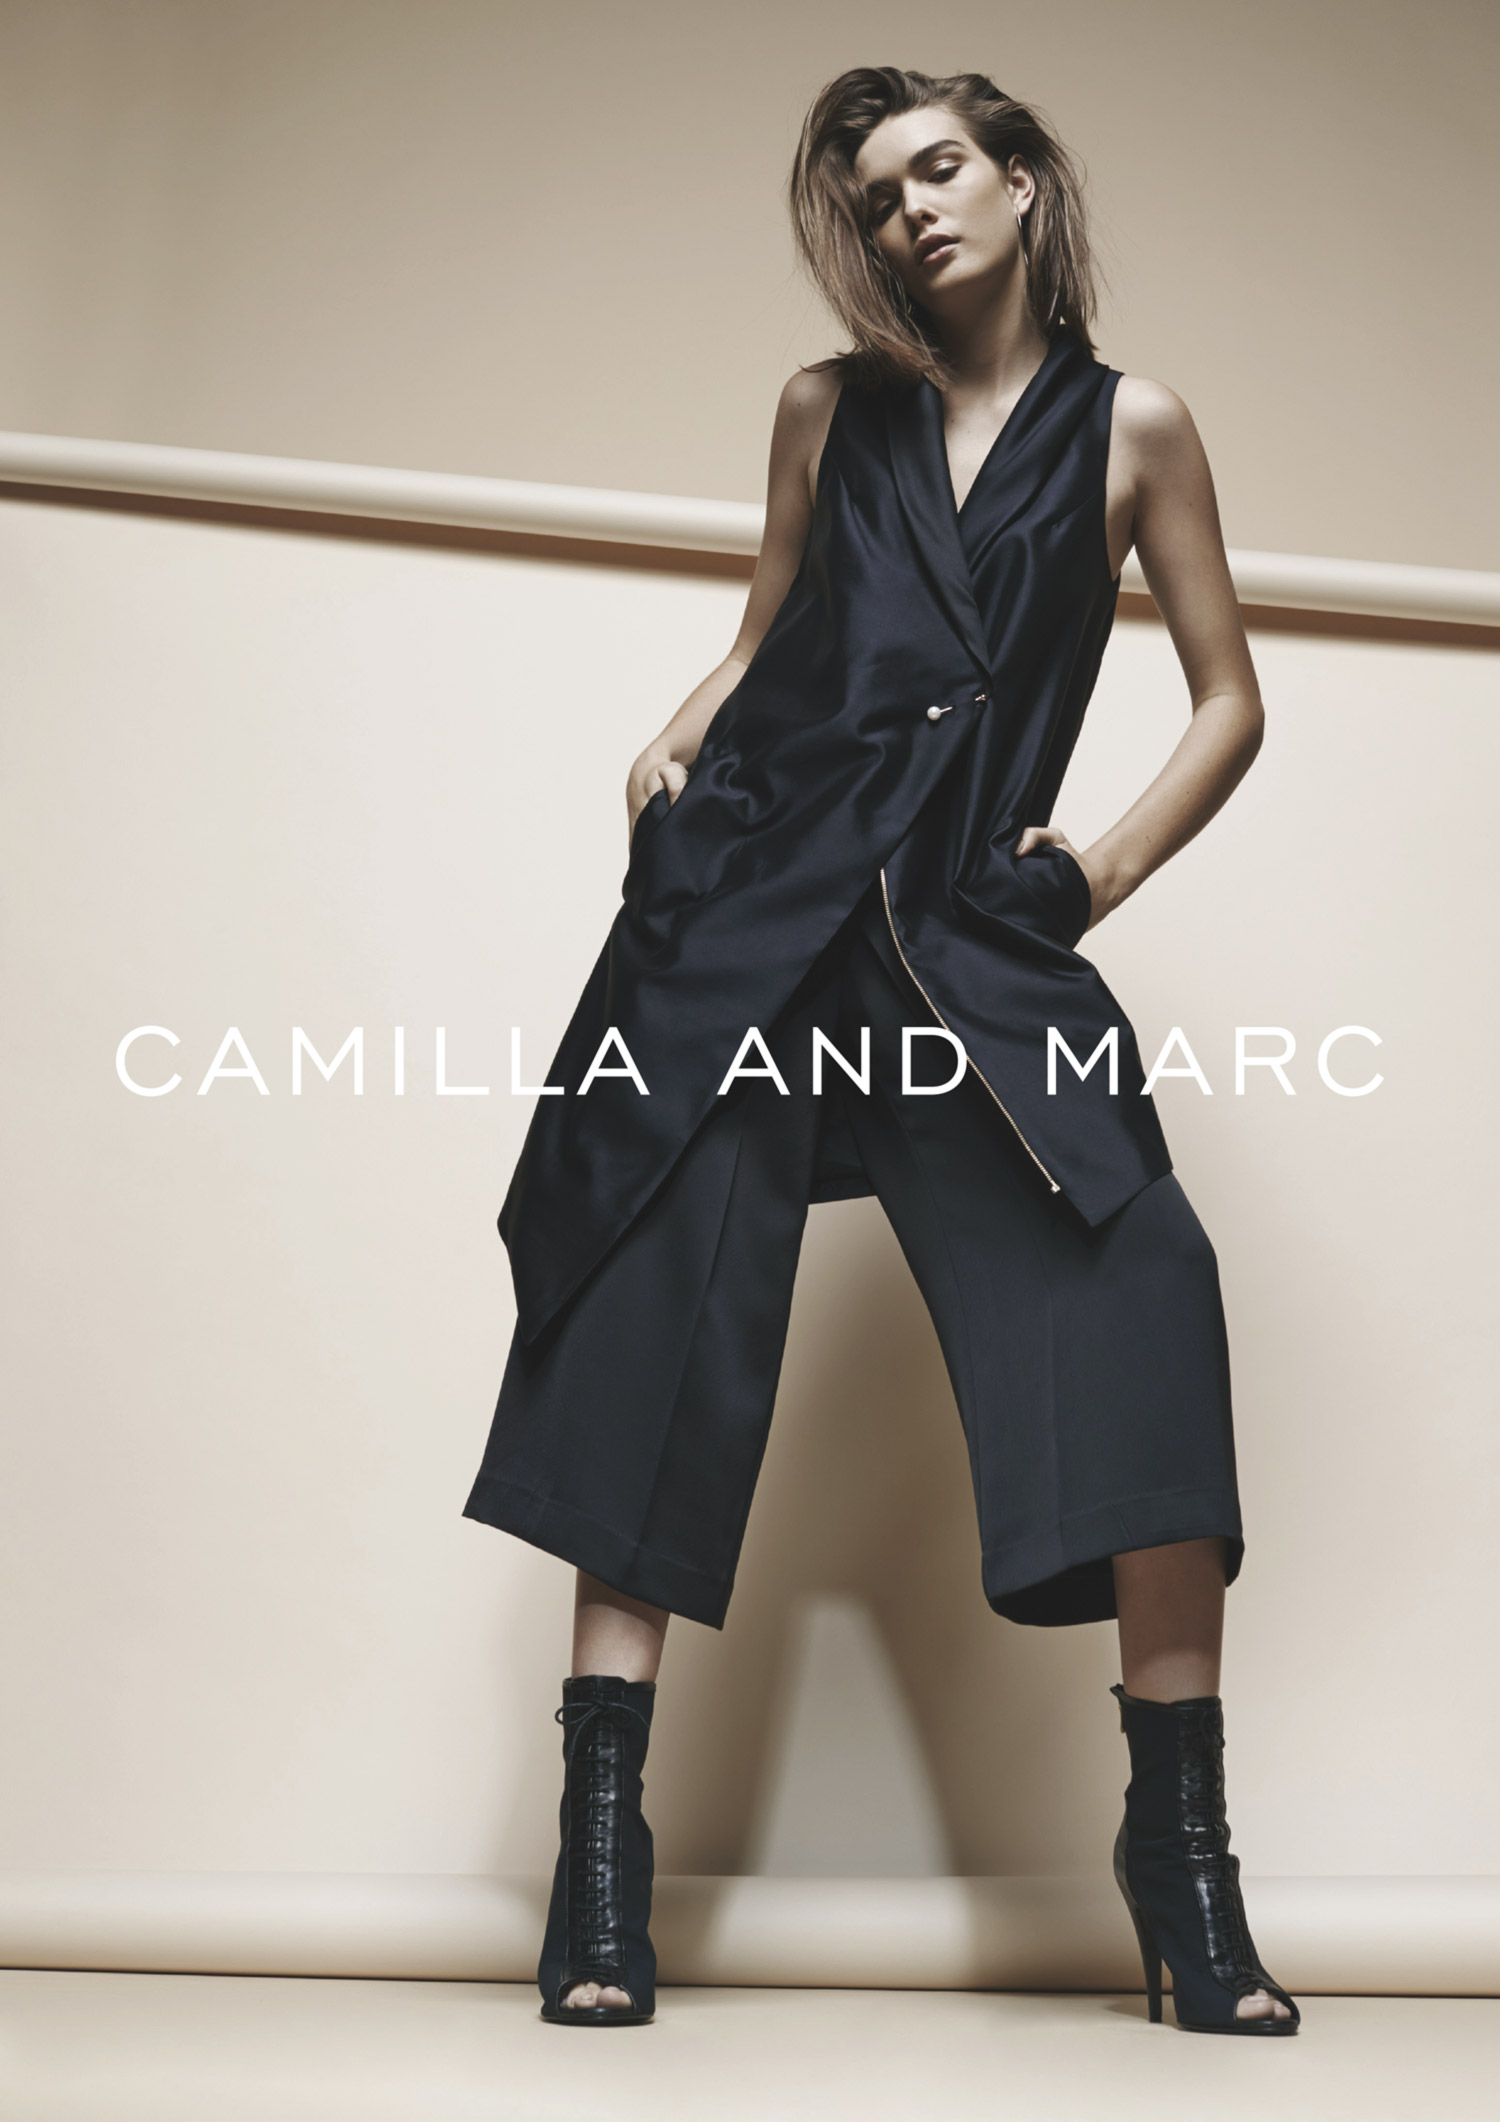 CAMILLA-AND-MARC-SS15-Lookbook_high-res-1.jpg